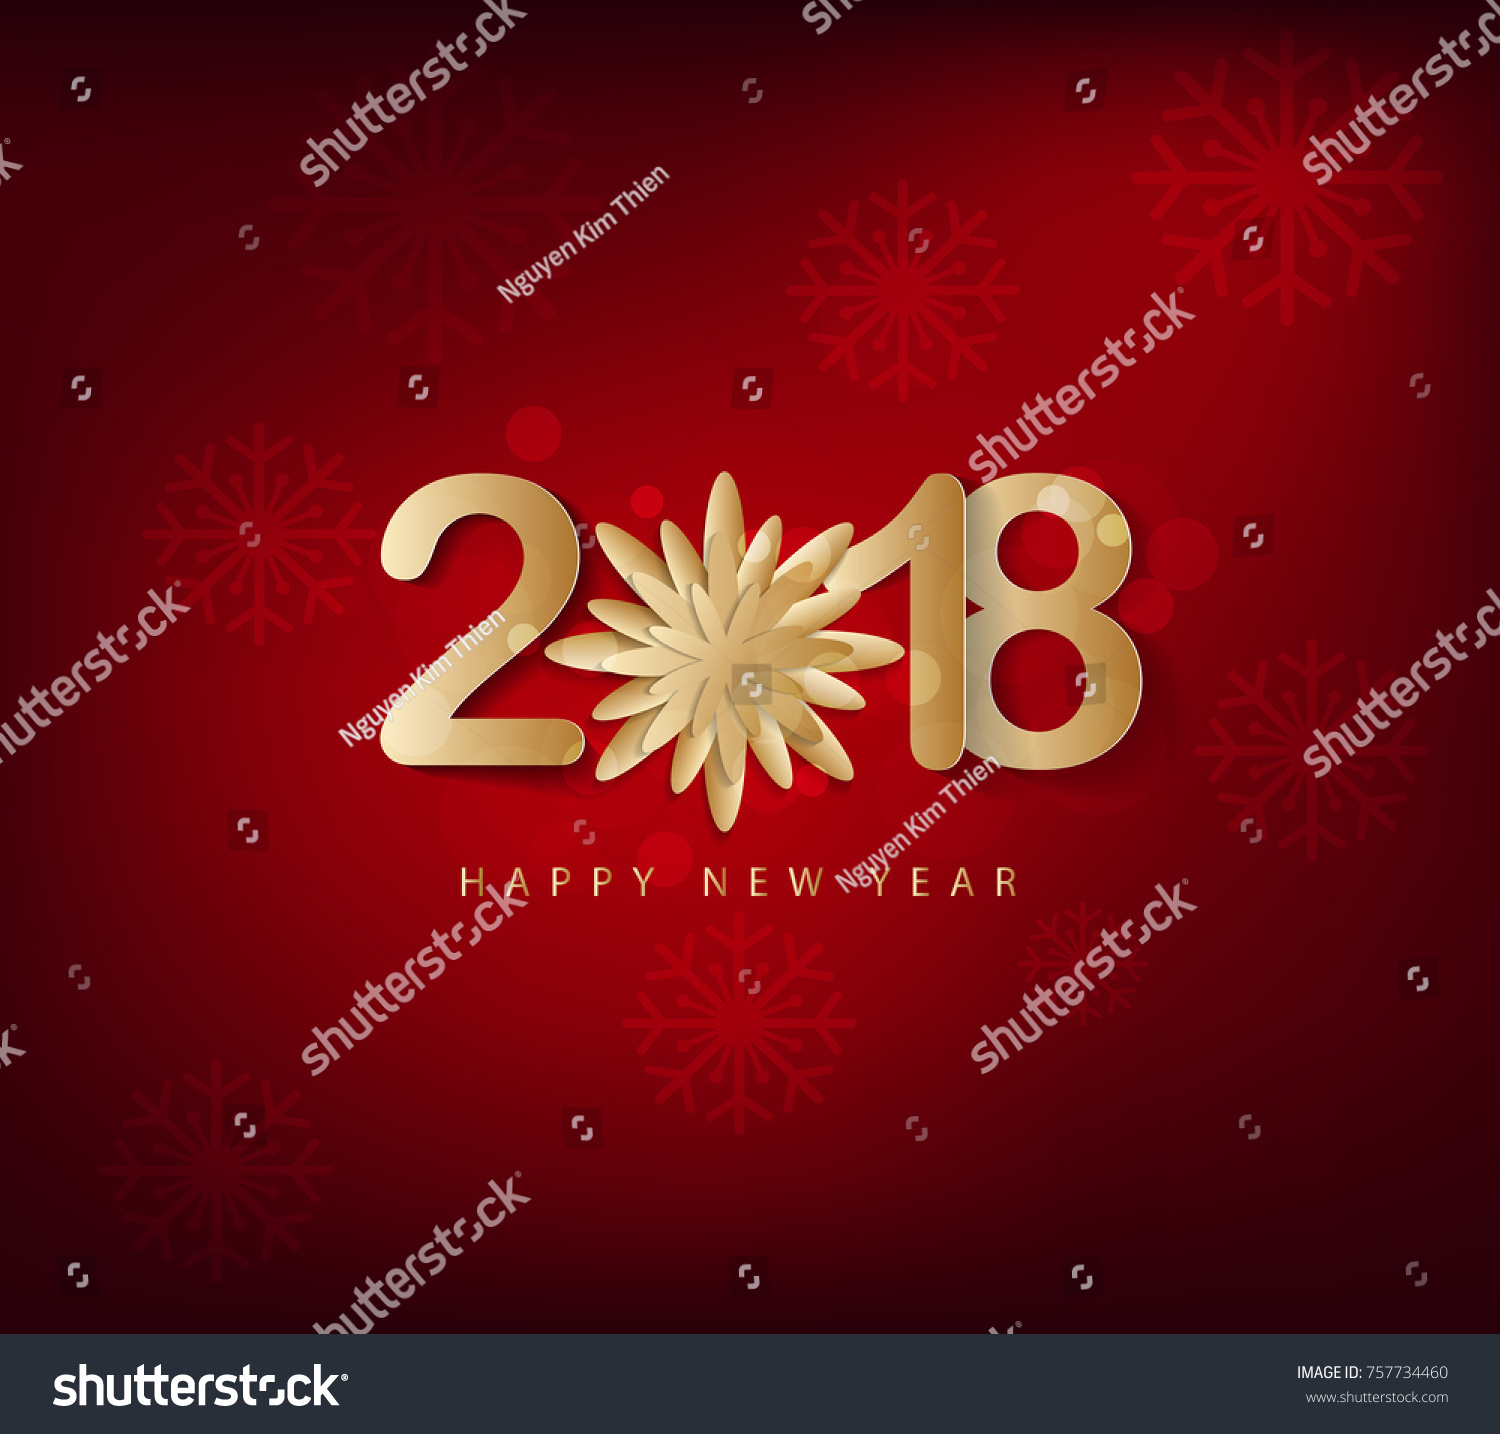 happy new year 2018 greeting card and merry christmas chinese new year of the dog